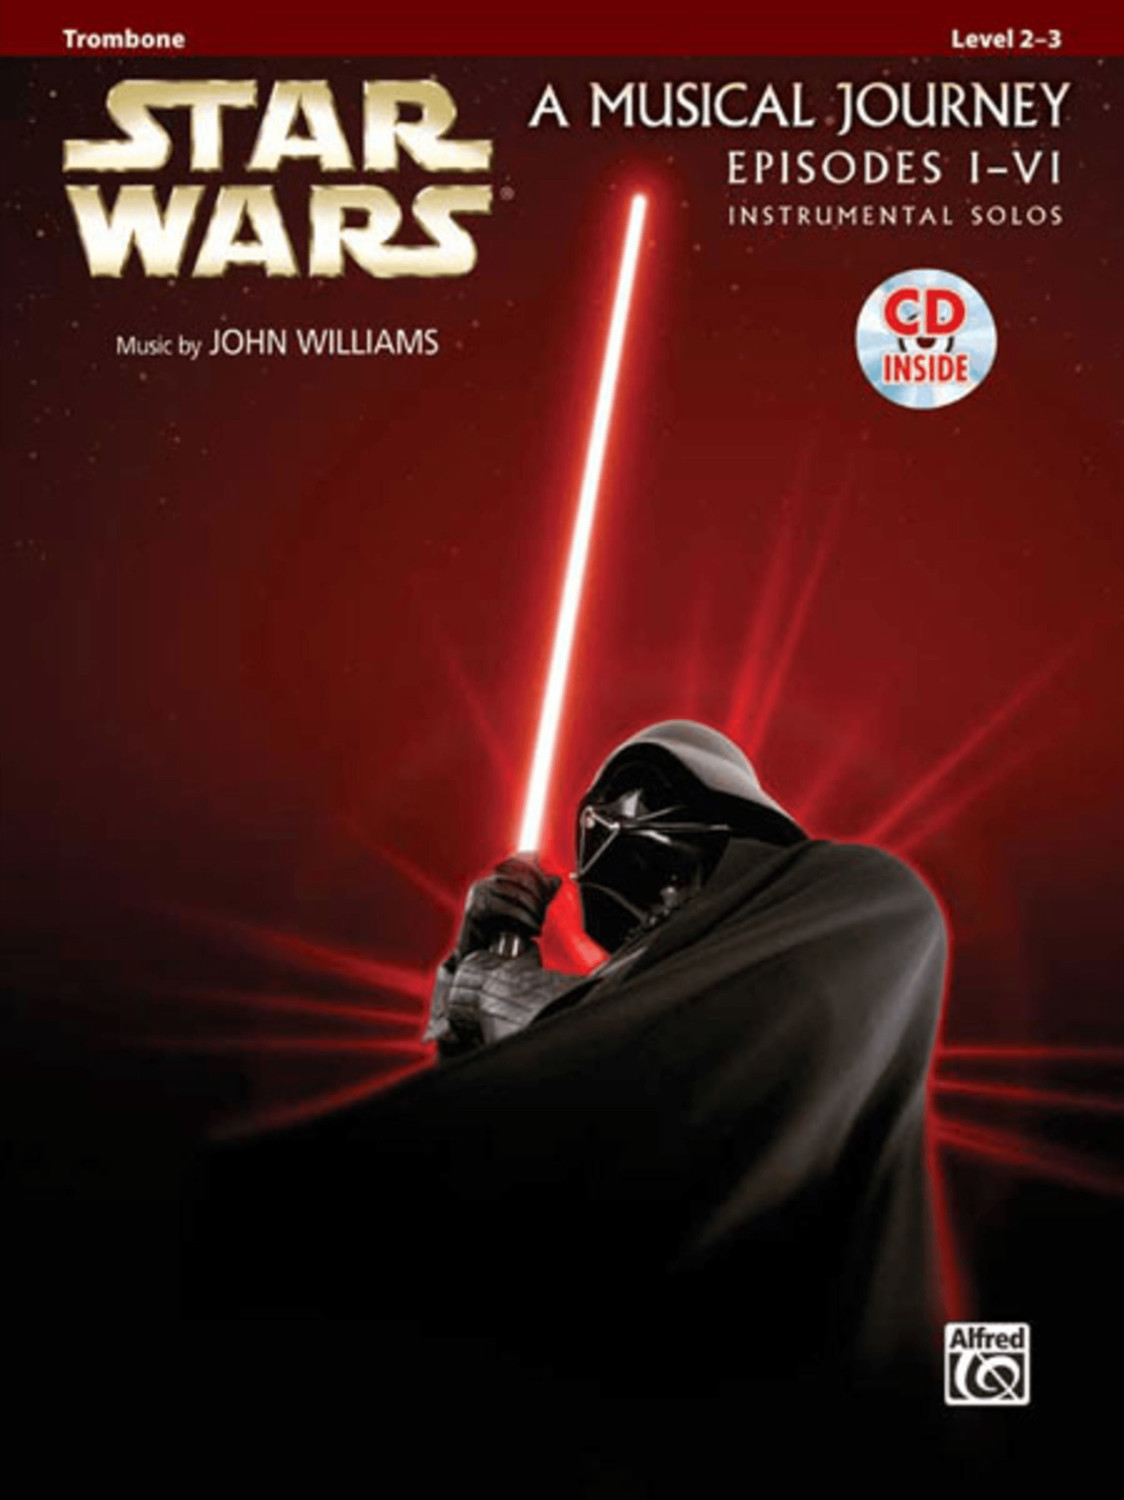 Image of Alfred Music Star Wars Instrumental Solos (Movies I-VI) 32119